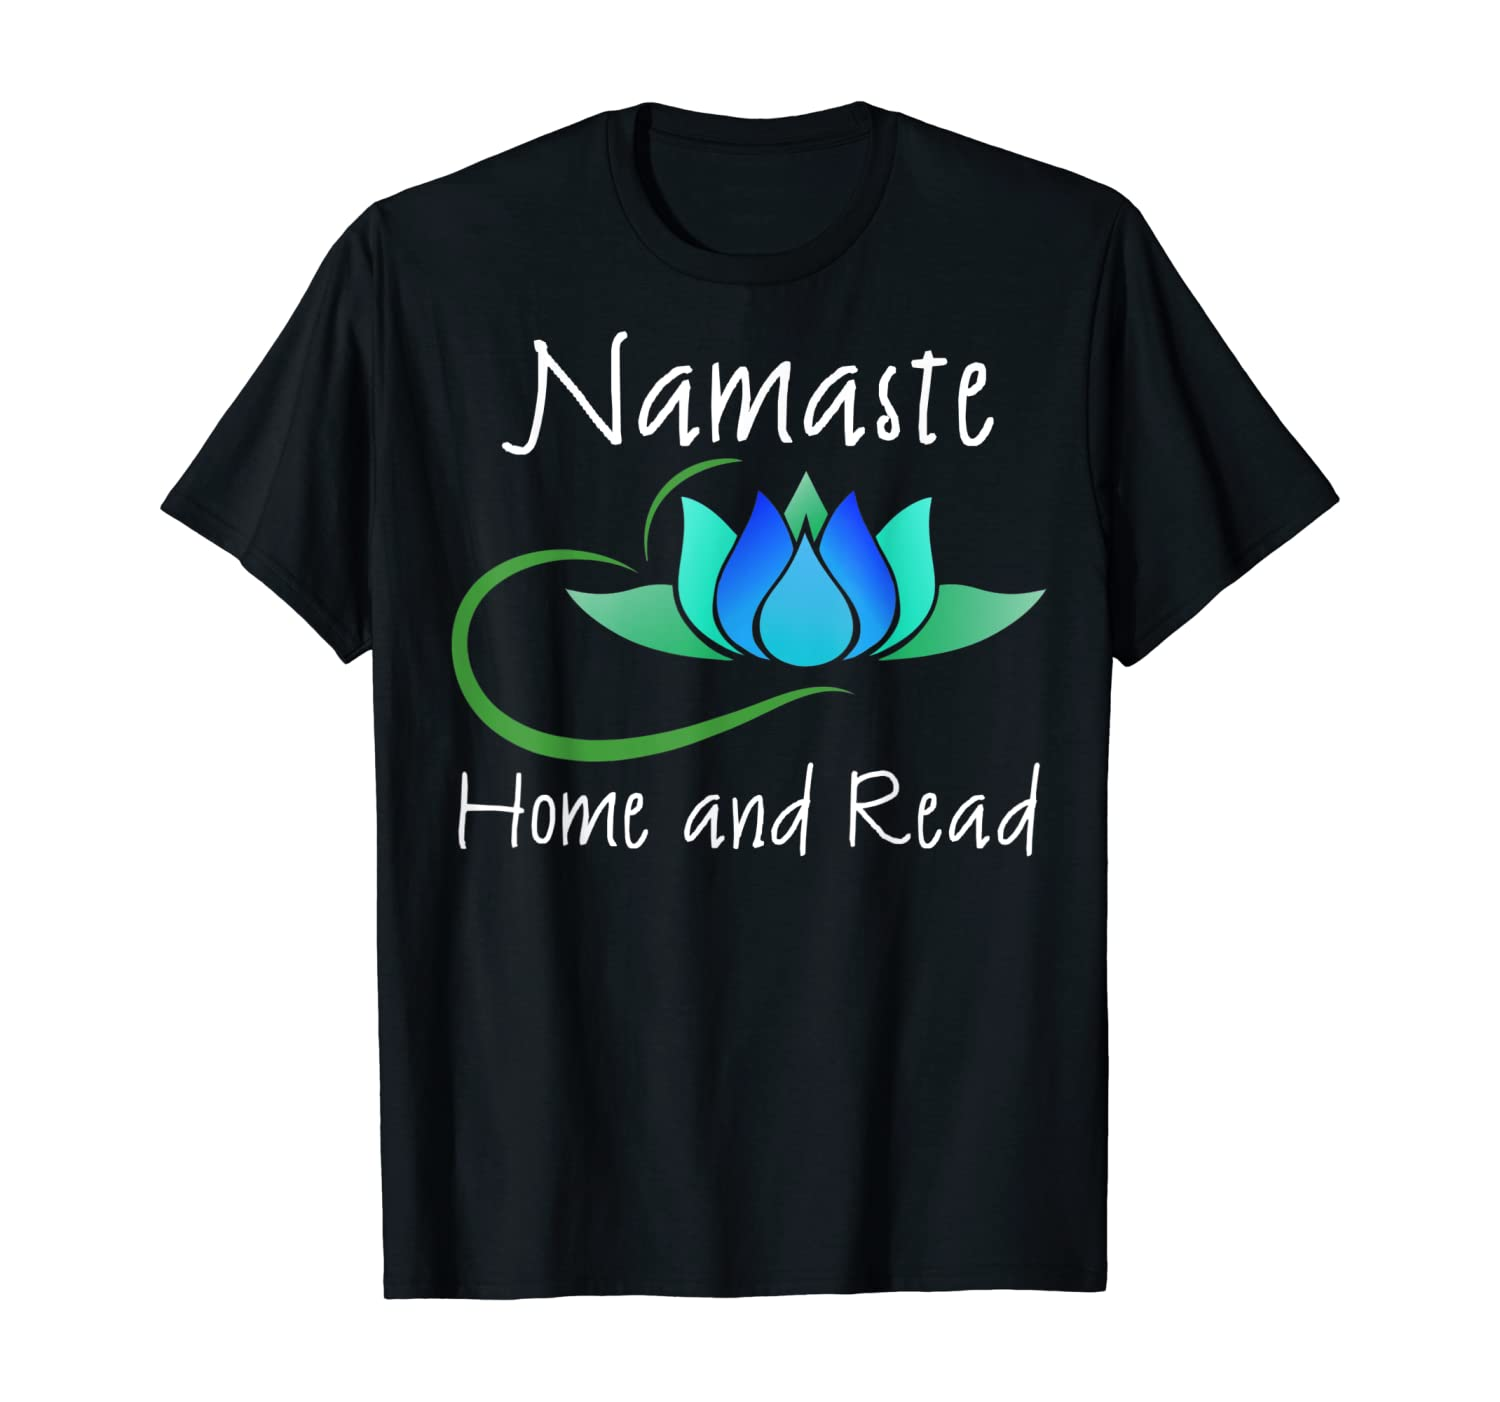 The Best Namaste Home And Read Shirt